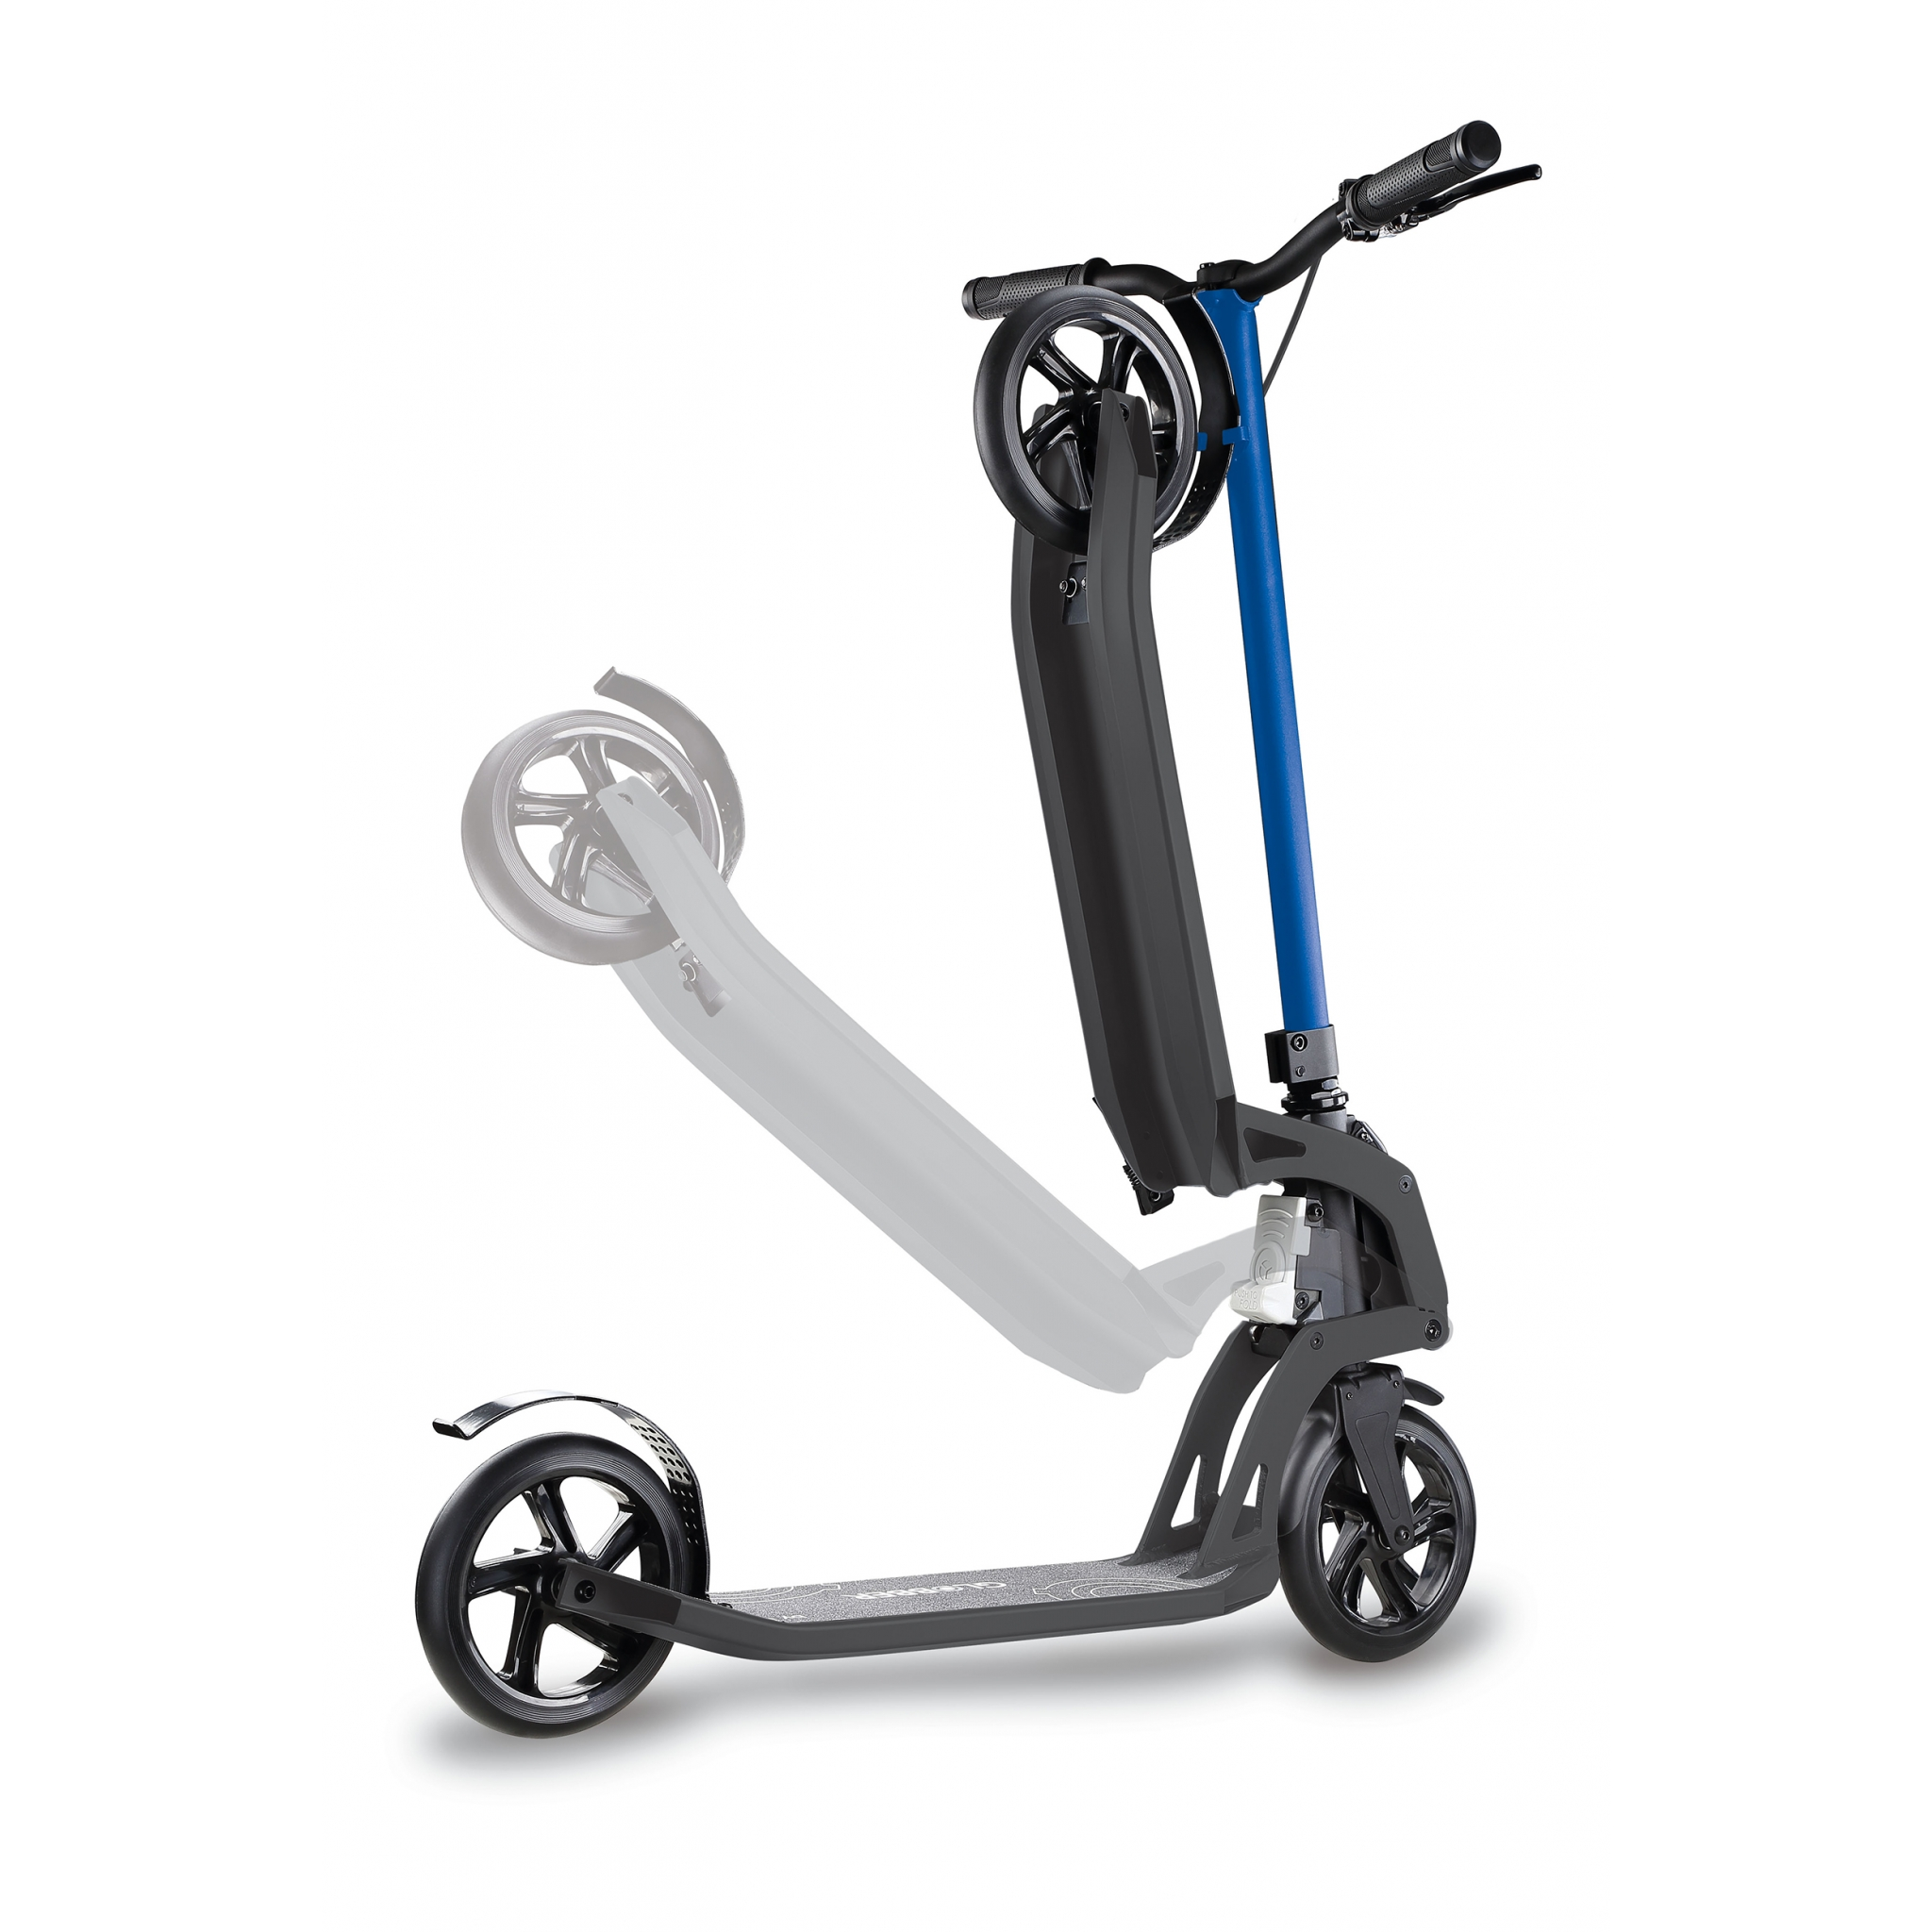 foldable scooter for adults with handbrake - Globber ONE K 180 BR 3